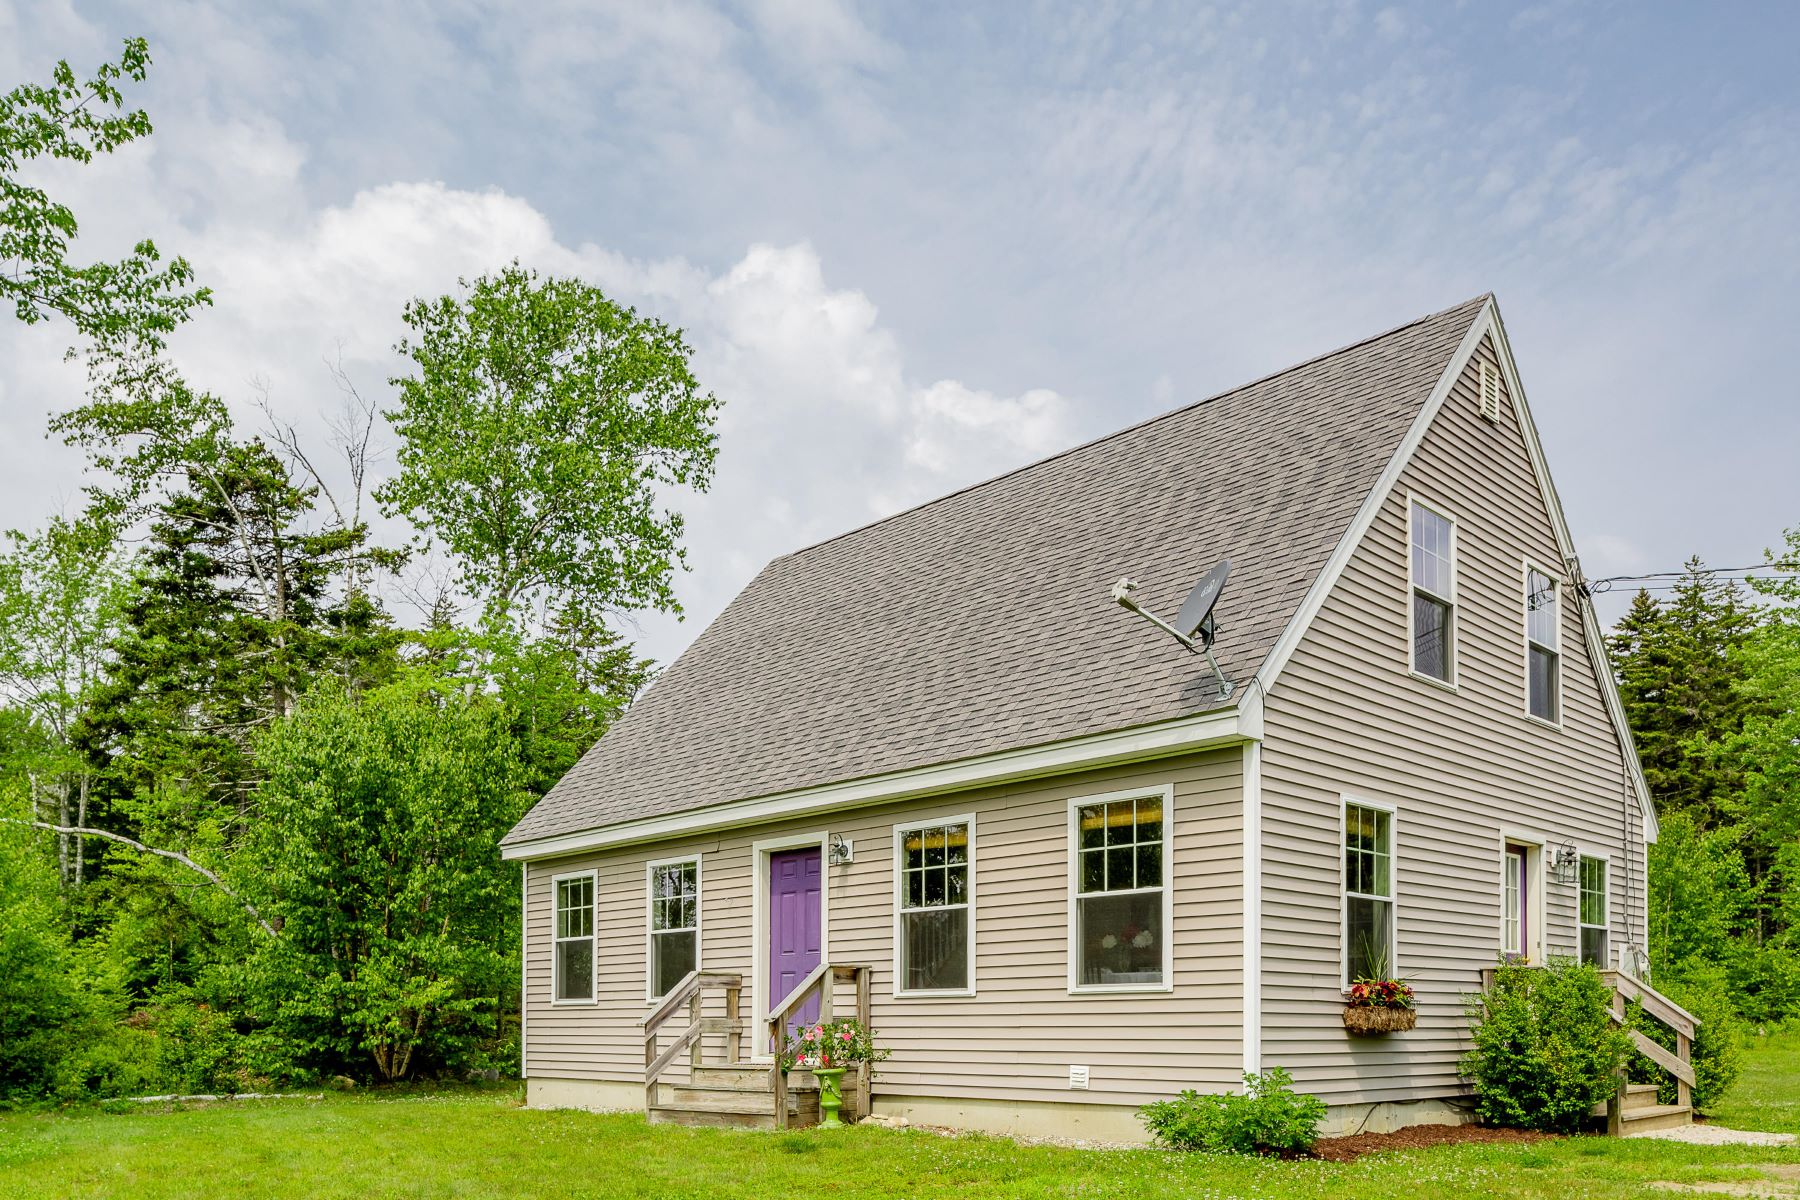 Single Family Homes for Sale at 17 Autumn Marsh Road St. George, Maine 04860 United States